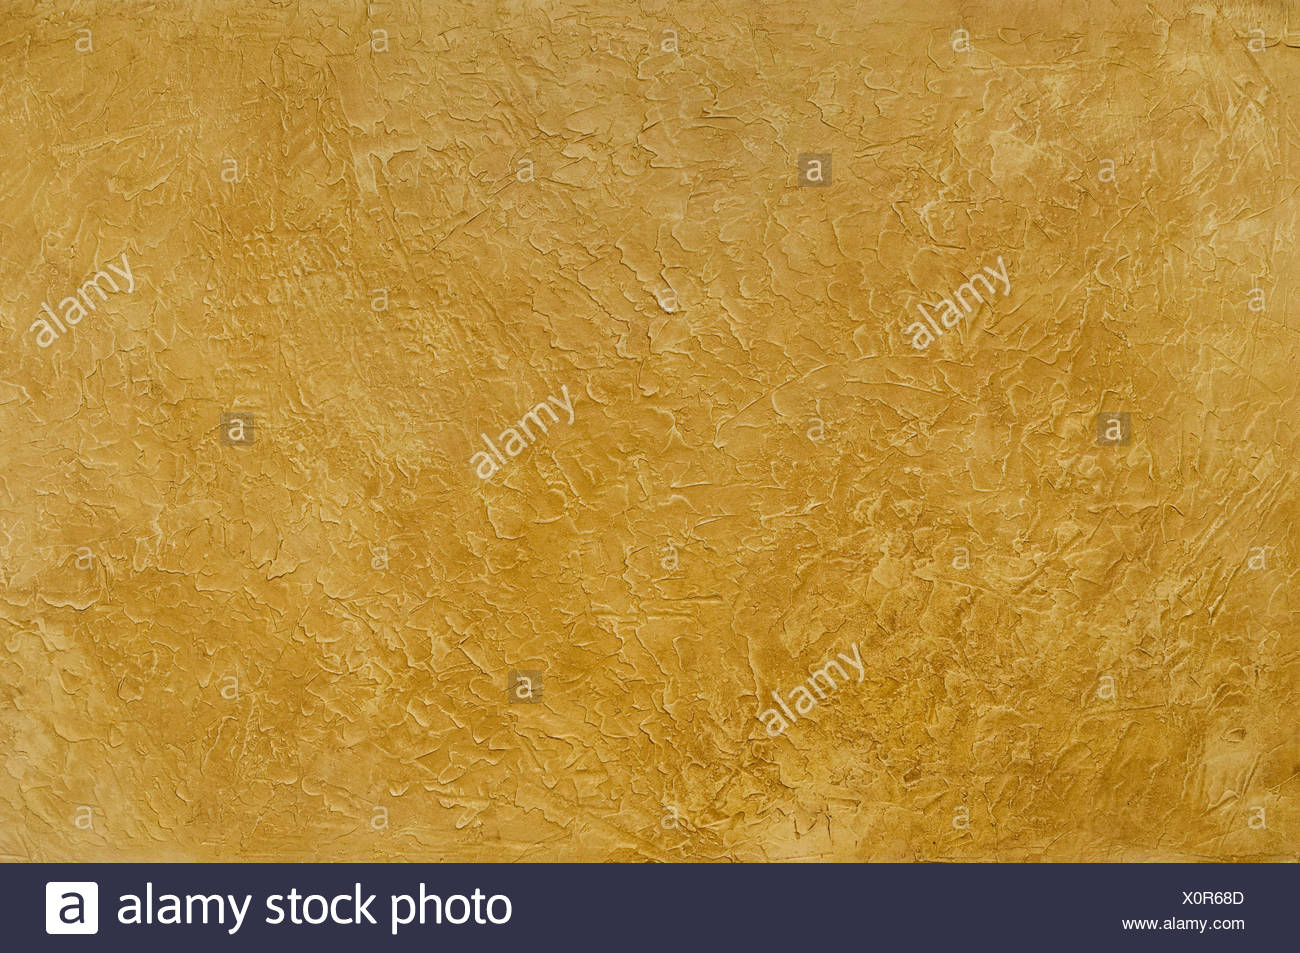 Plaster Gold Stock Photos & Plaster Gold Stock Images - Alamy